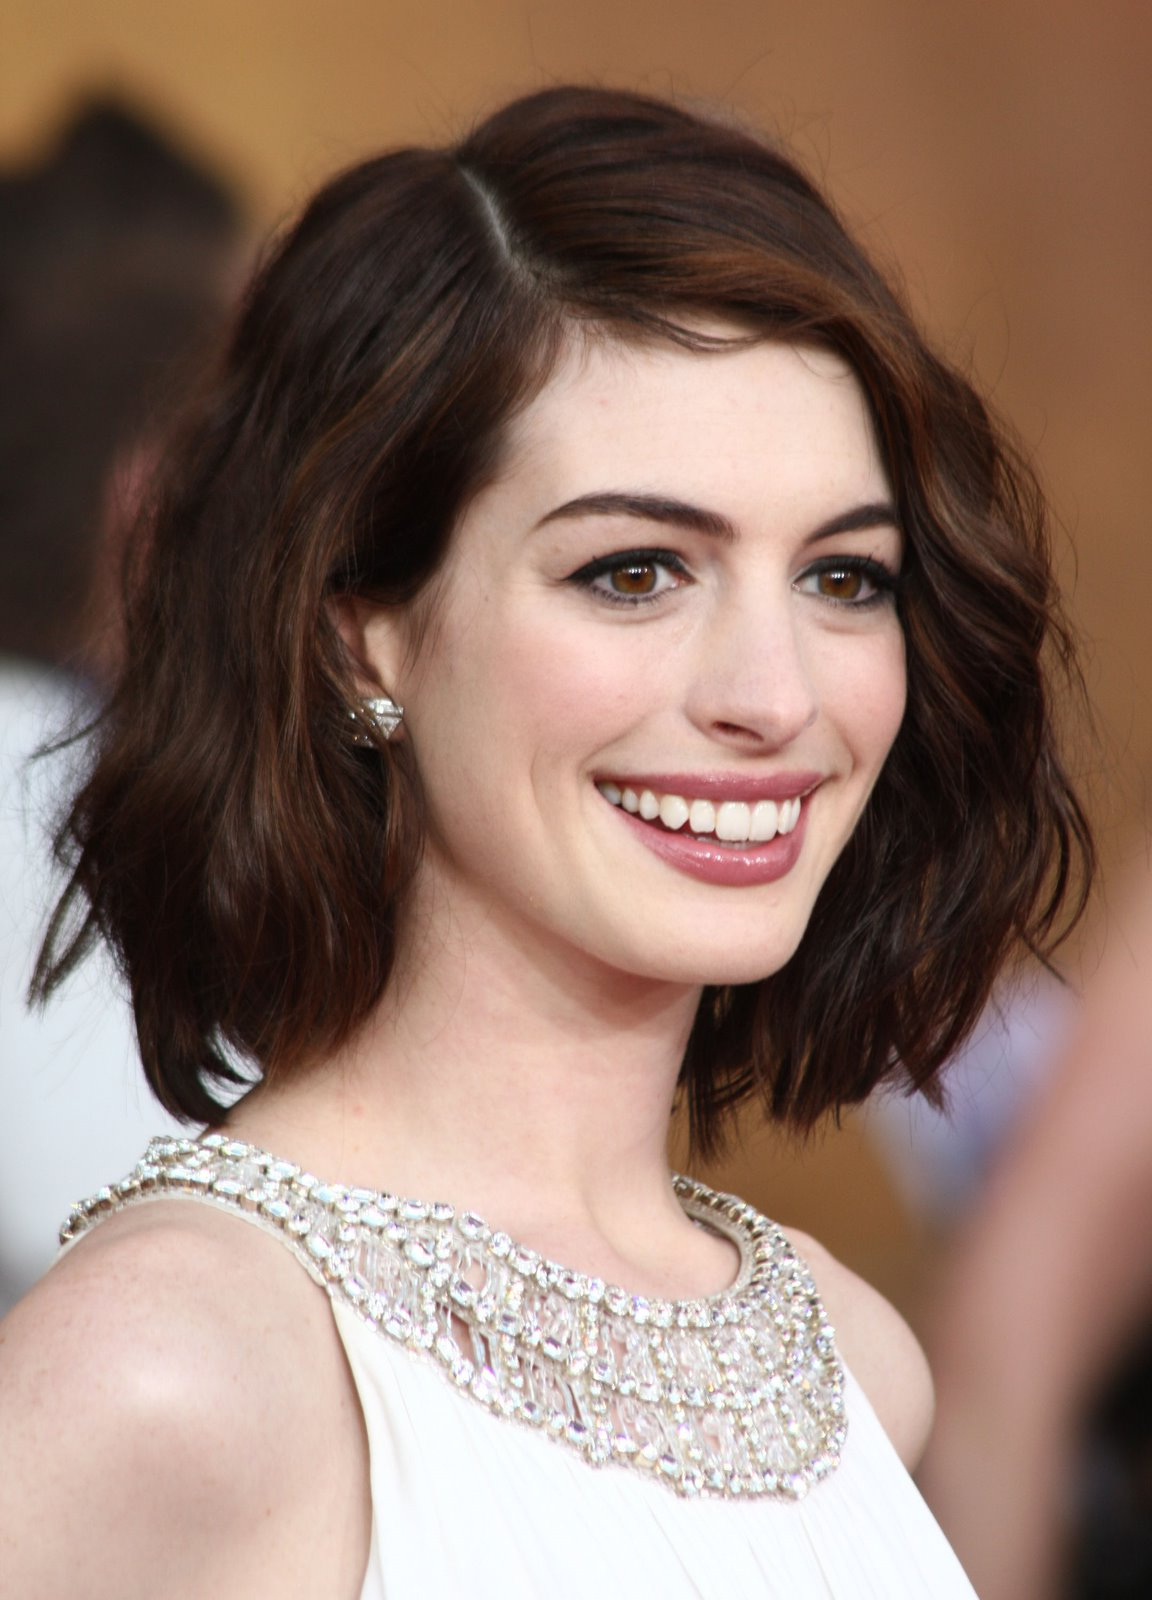 Hairstyles For Short Hair For Prom | 1080P Hd Wallpaper With Prom Short Hairstyles (View 20 of 25)